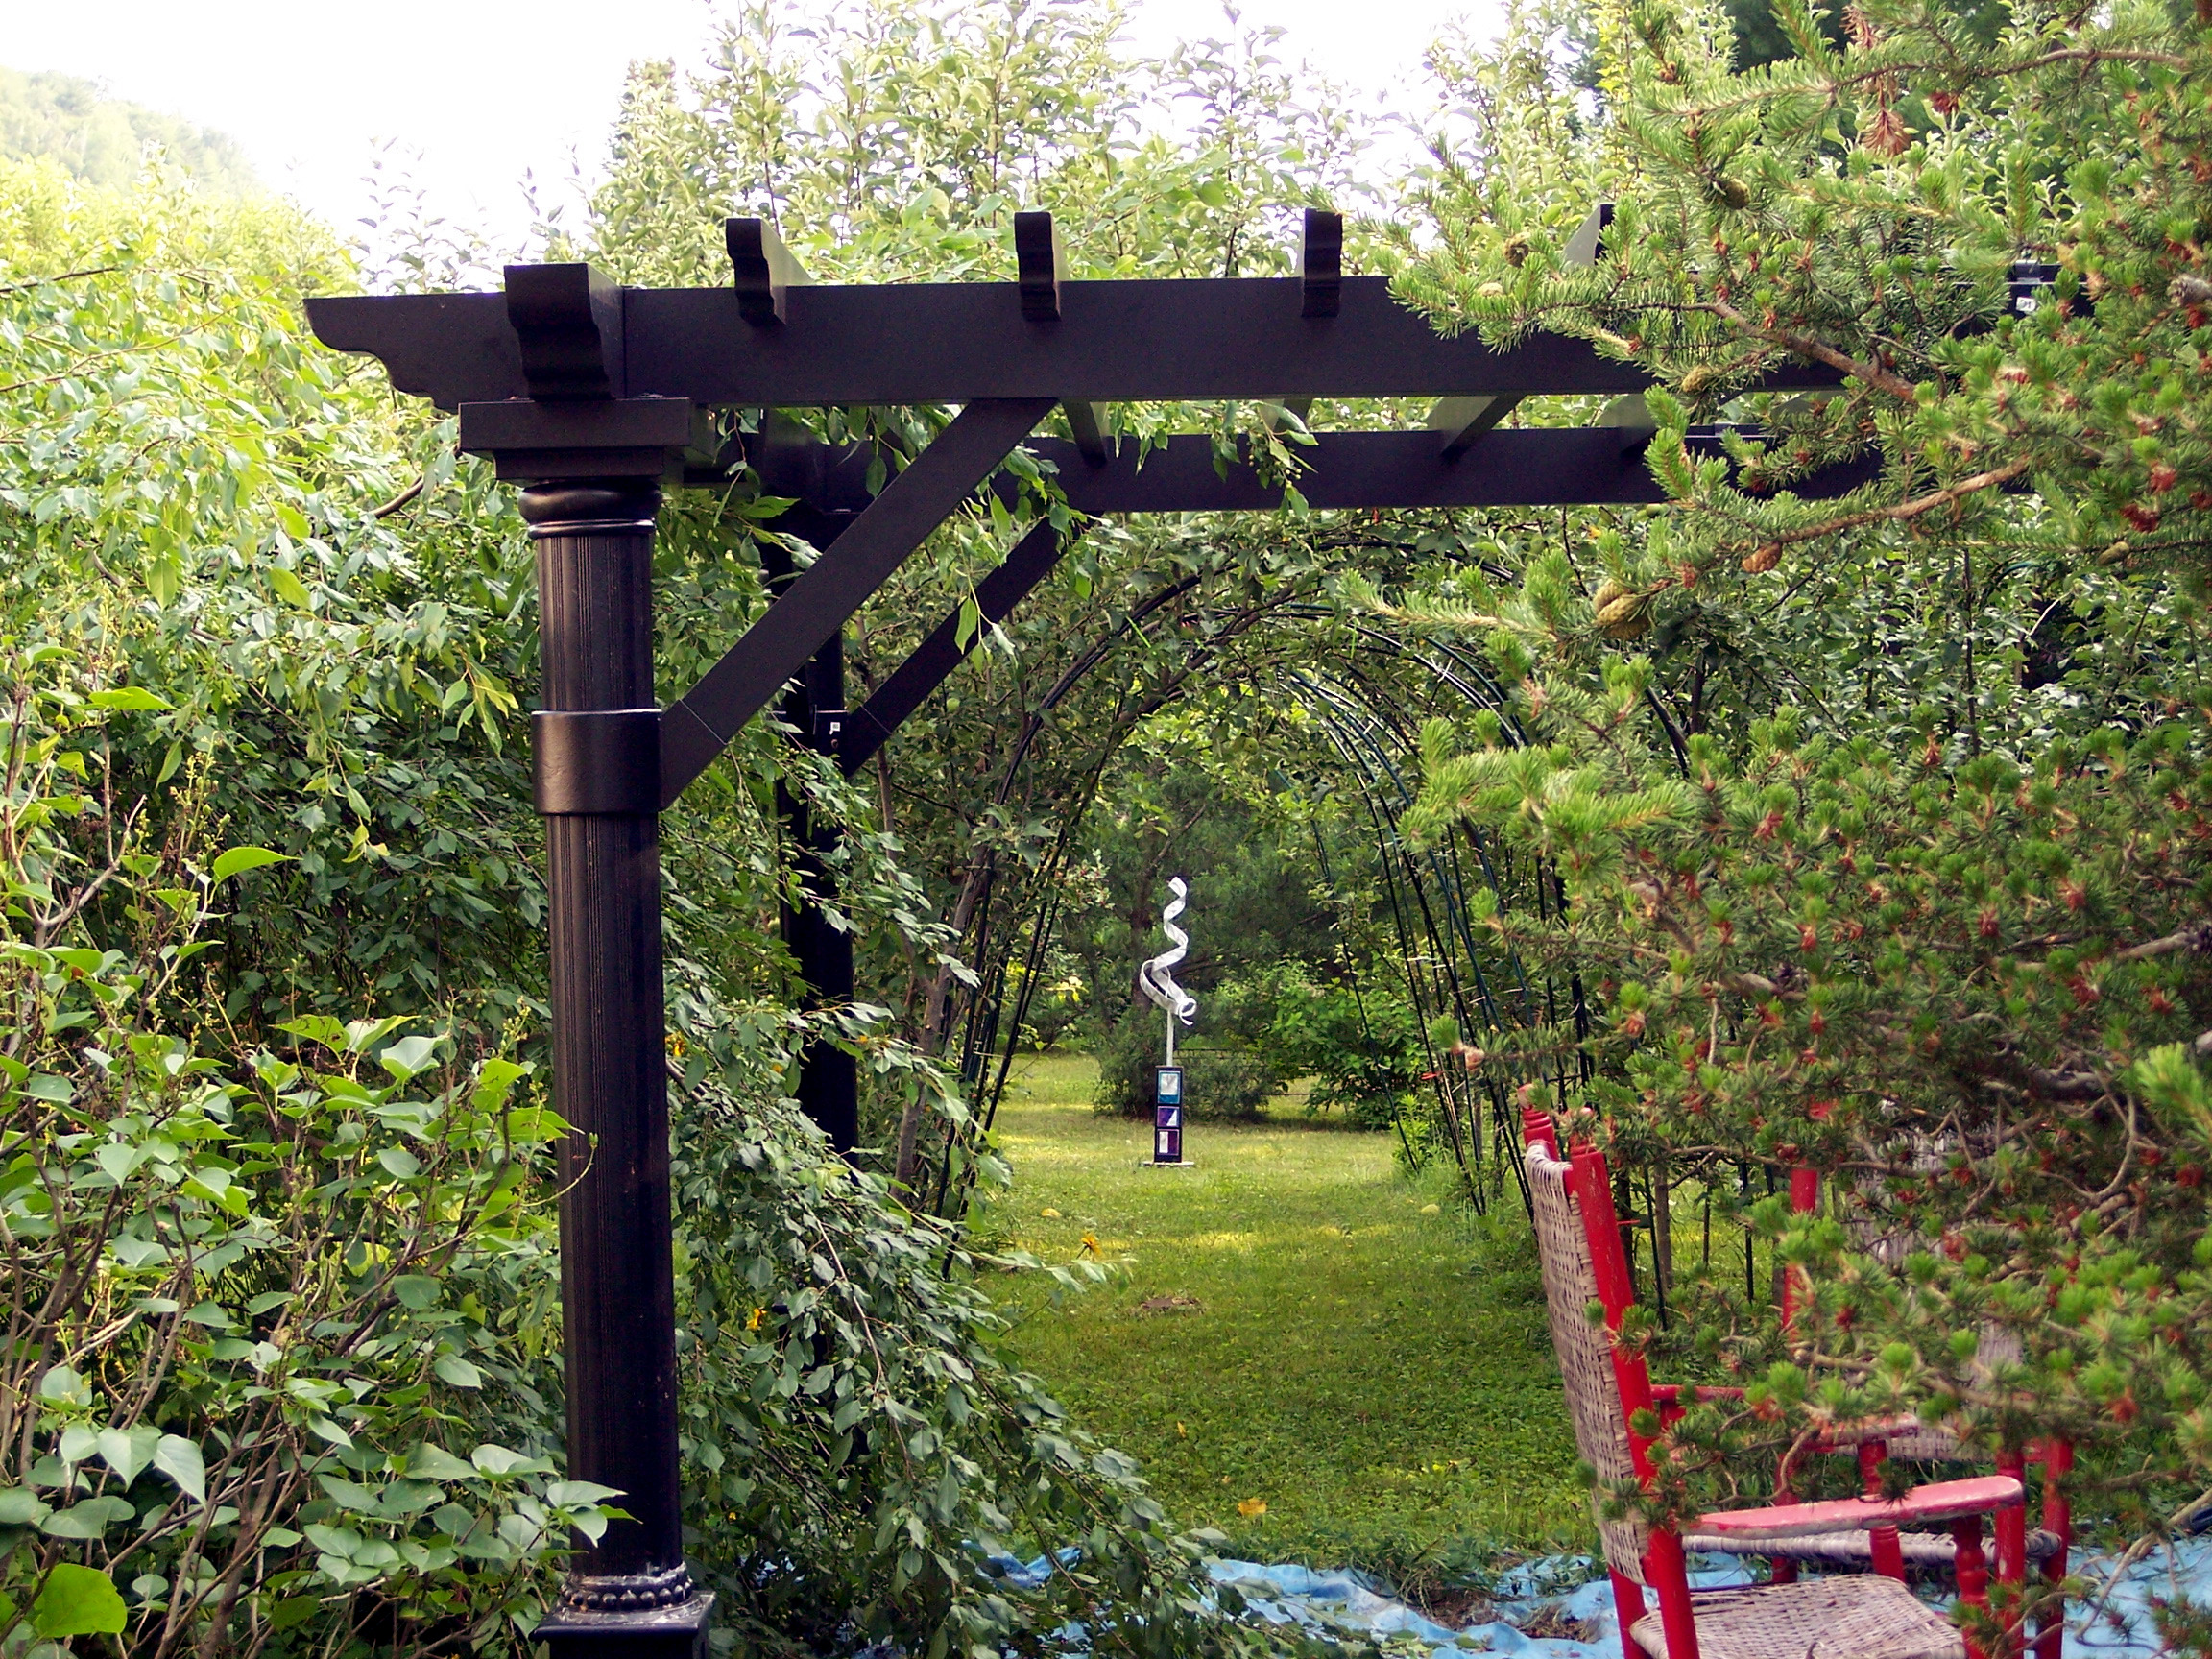 Pergola Made Of Wood Or Metal For A Southern Flair In The Garden Interior Design Ideas Avso Org